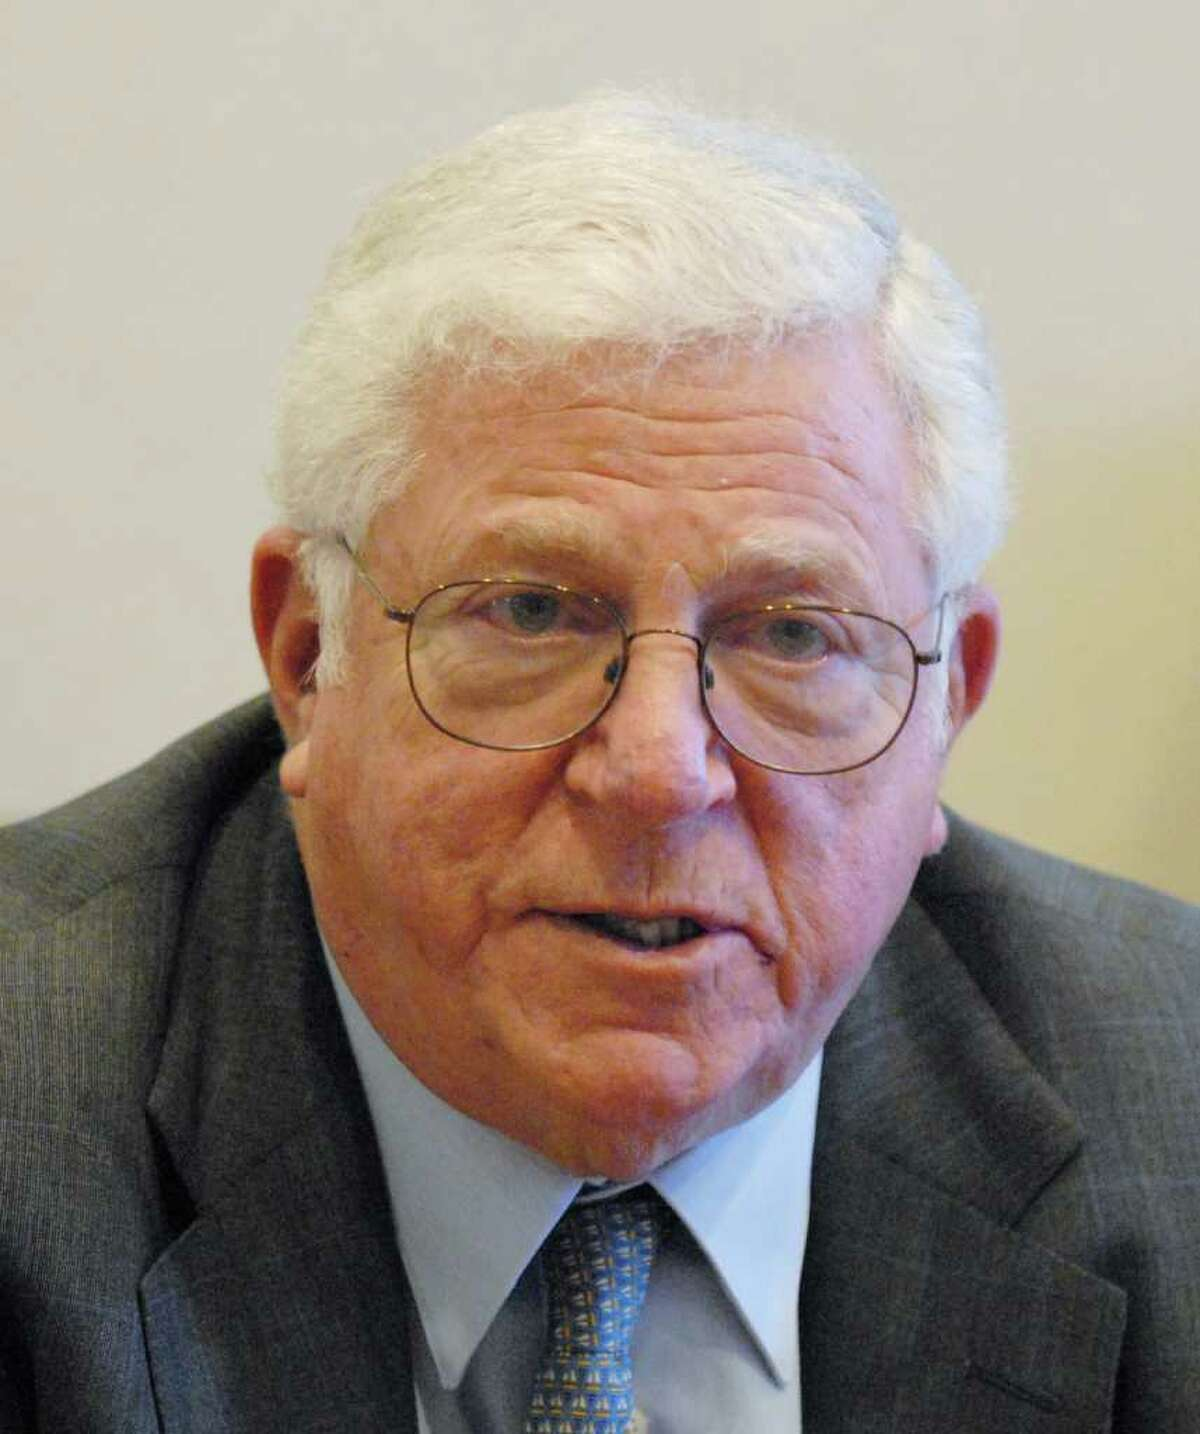 Lt. Gov. Richard Ravitch says he accomplished little during his short time in office, which begain in 2009.